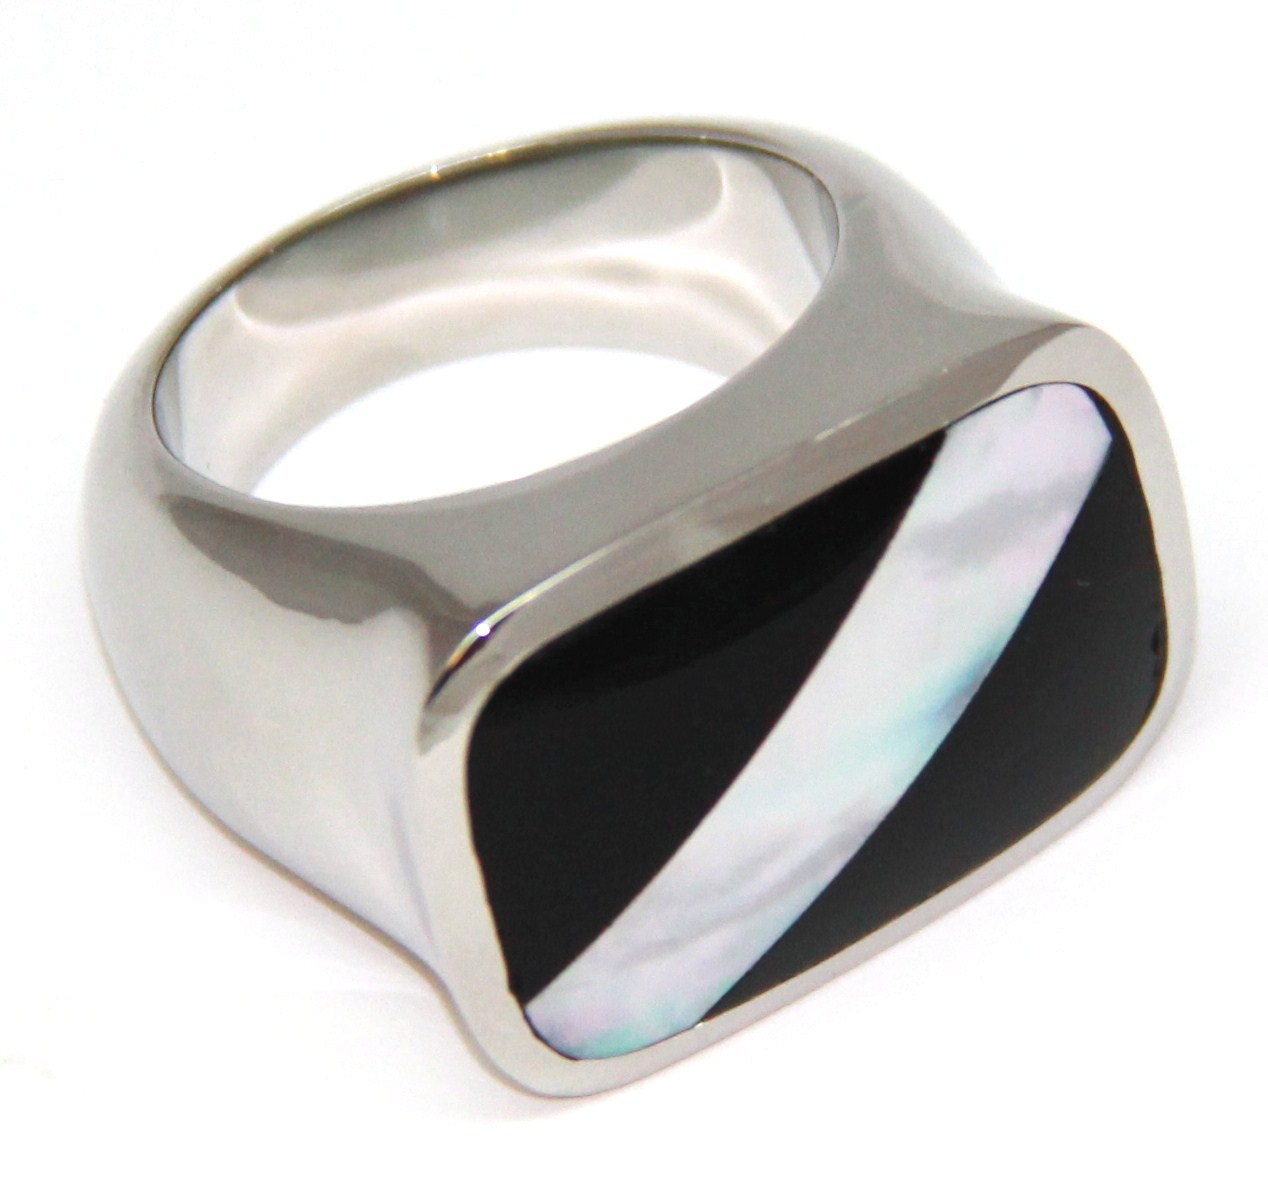 SSR2799 - Stunning Black Onyx Abalone Stainless Steel Ring Size 8